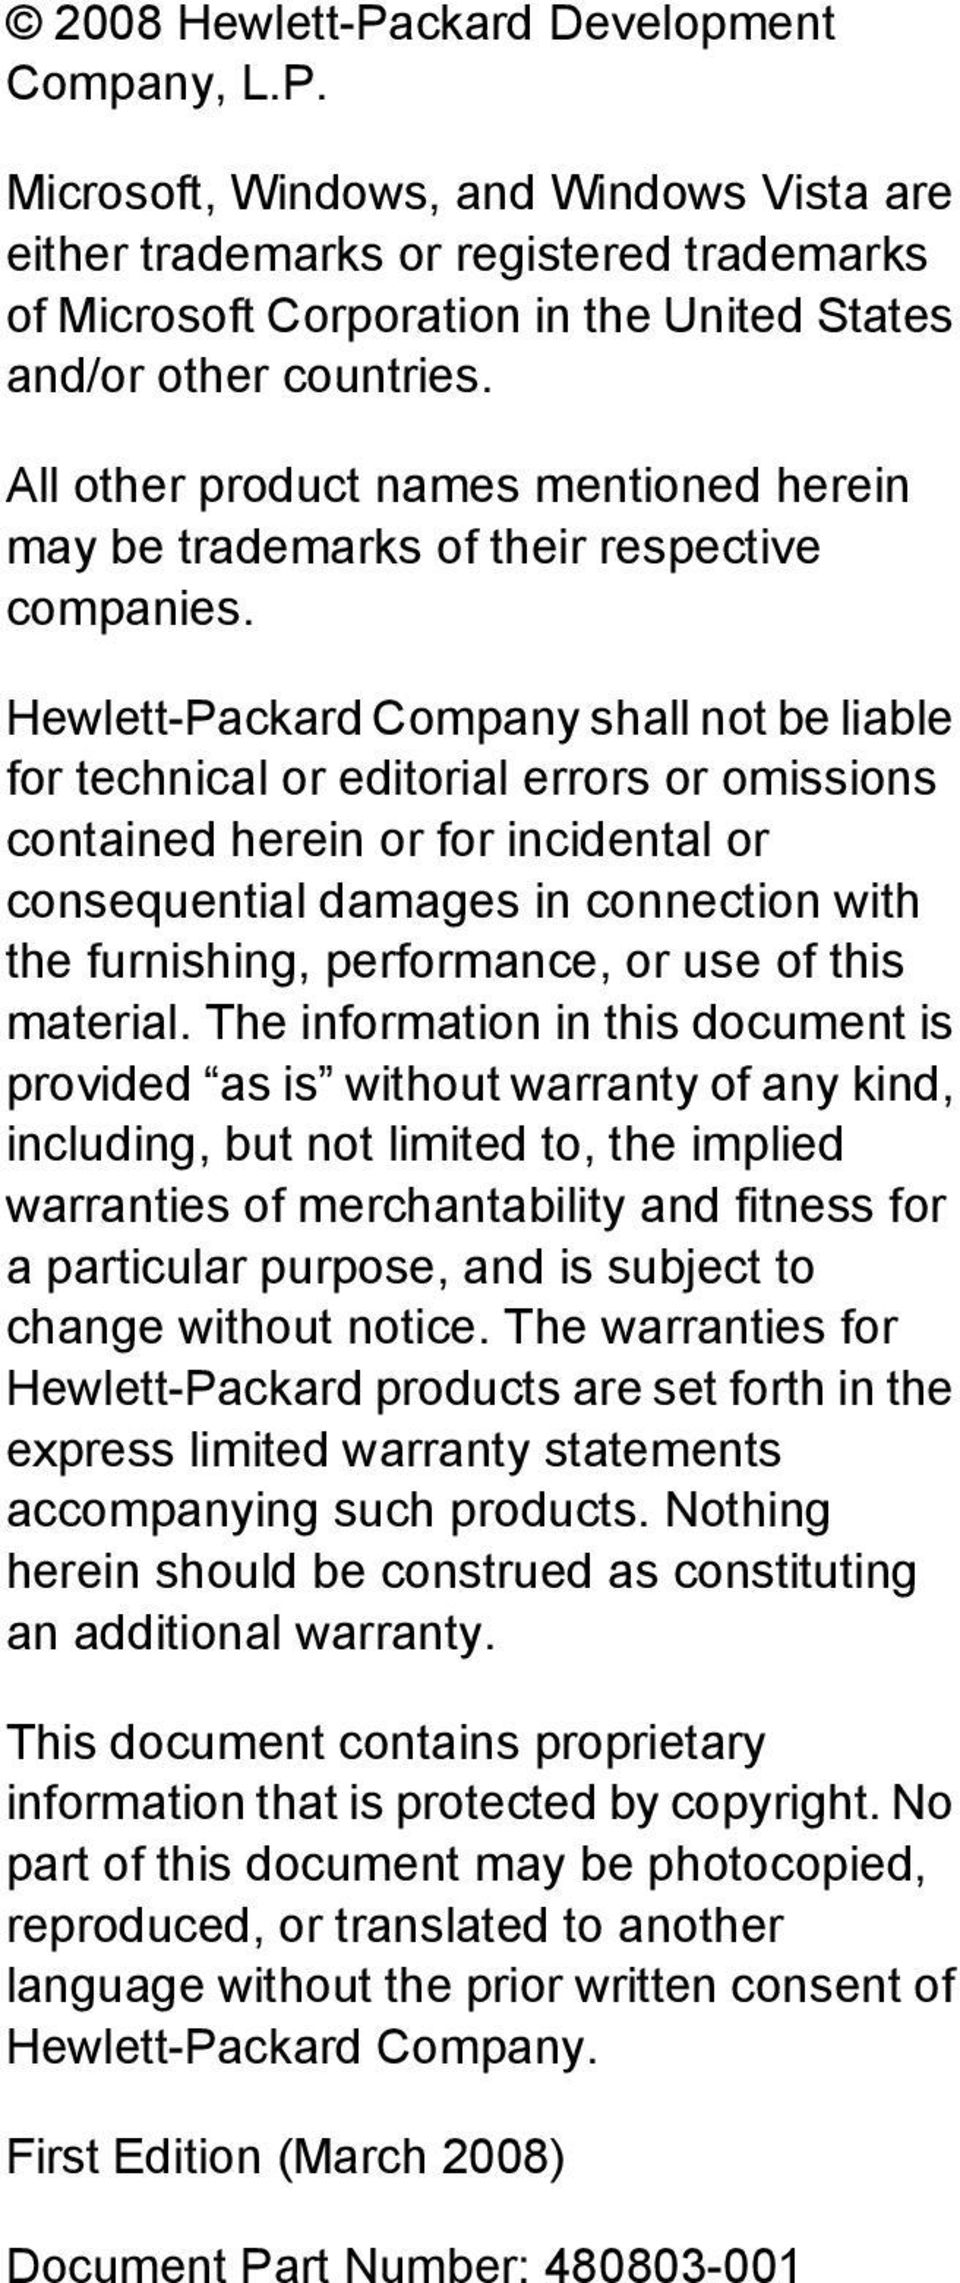 Hewlett-Packard Company shall not be liable for technical or editorial errors or omissions contained herein or for incidental or consequential damages in connection with the furnishing, performance,